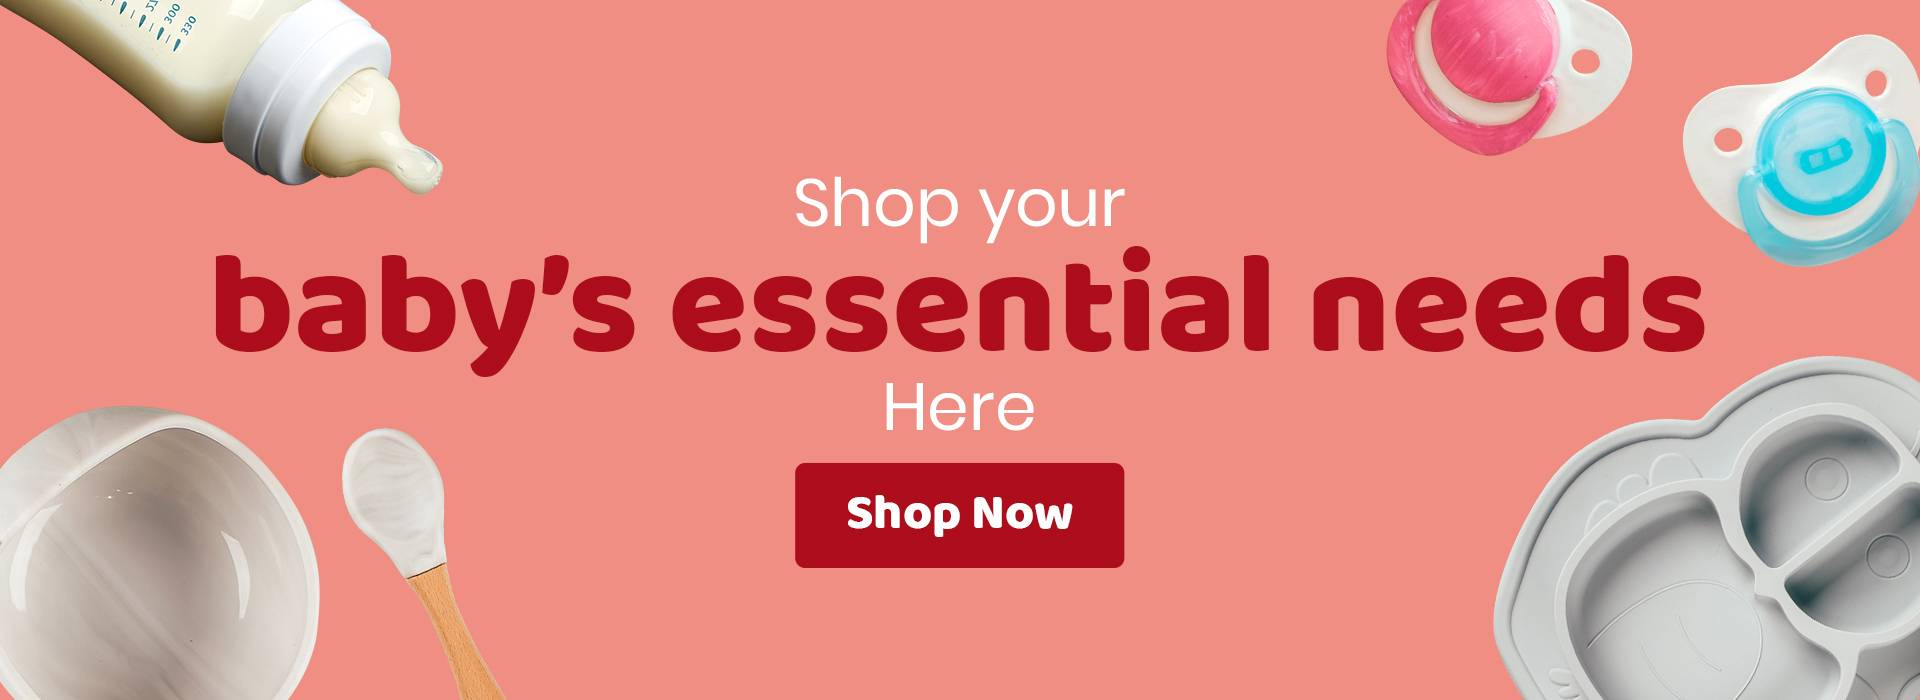 HOMEPAGE BANNER-BABY ESSENTIAL